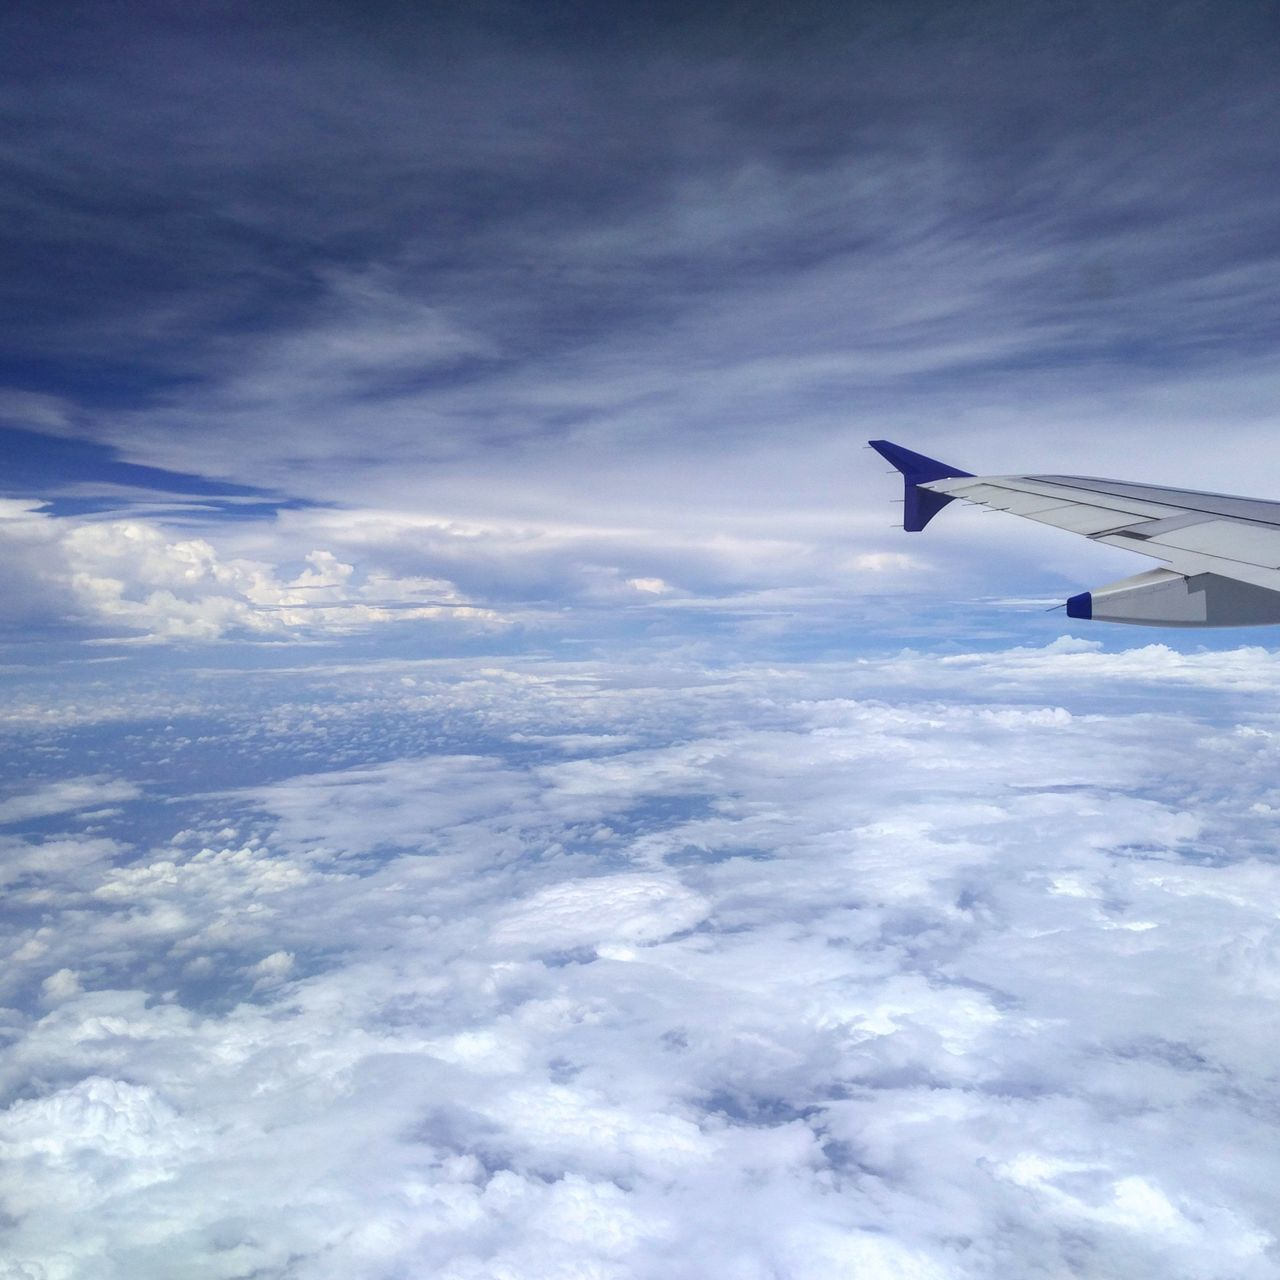 cloud - sky, sky, airplane, transportation, flying, nature, airplane wing, journey, aerial view, no people, beauty in nature, outdoors, day, mid-air, scenics, blue